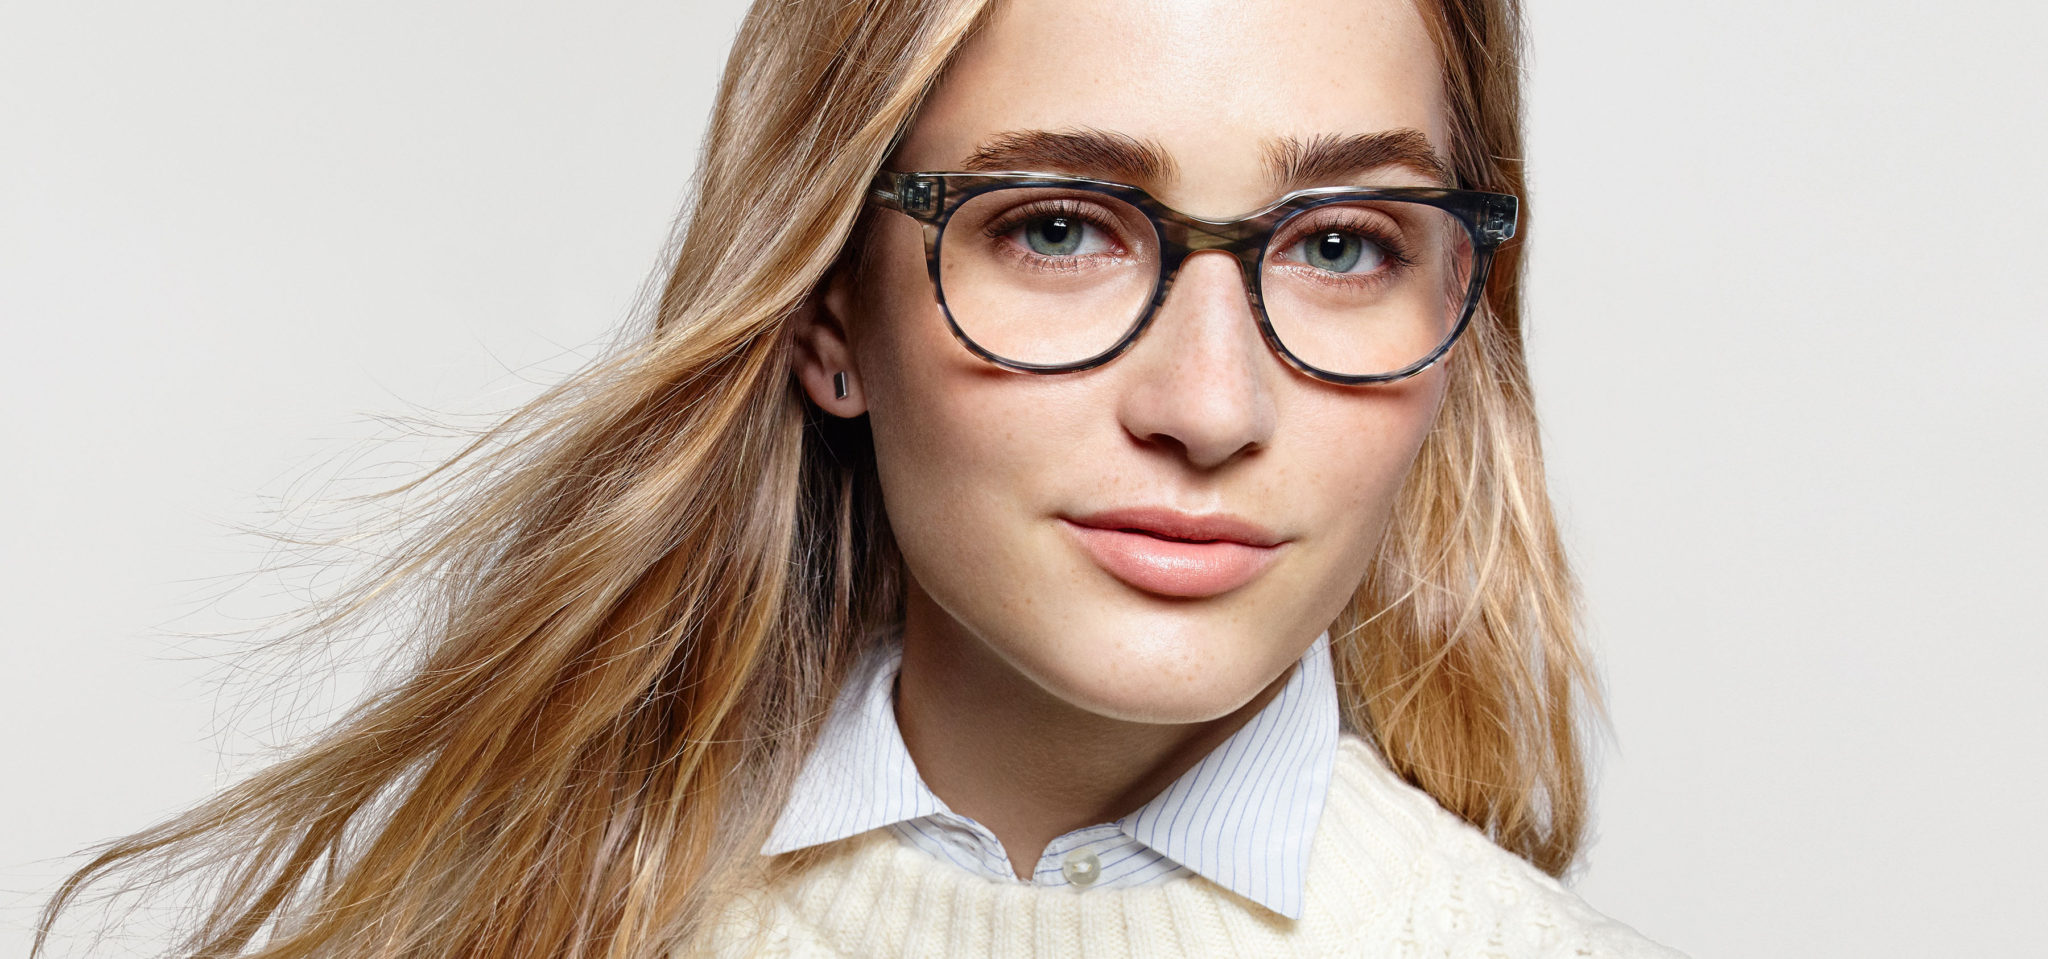 New York City-based eyewear retailer Warby Parker will open its first Canadian store this summer in Toronto. It could be the first of several Canadian locations, and it will compete with at least two value-priced eyewear retailers already operating stores in Canada -- including one that's homegrown.